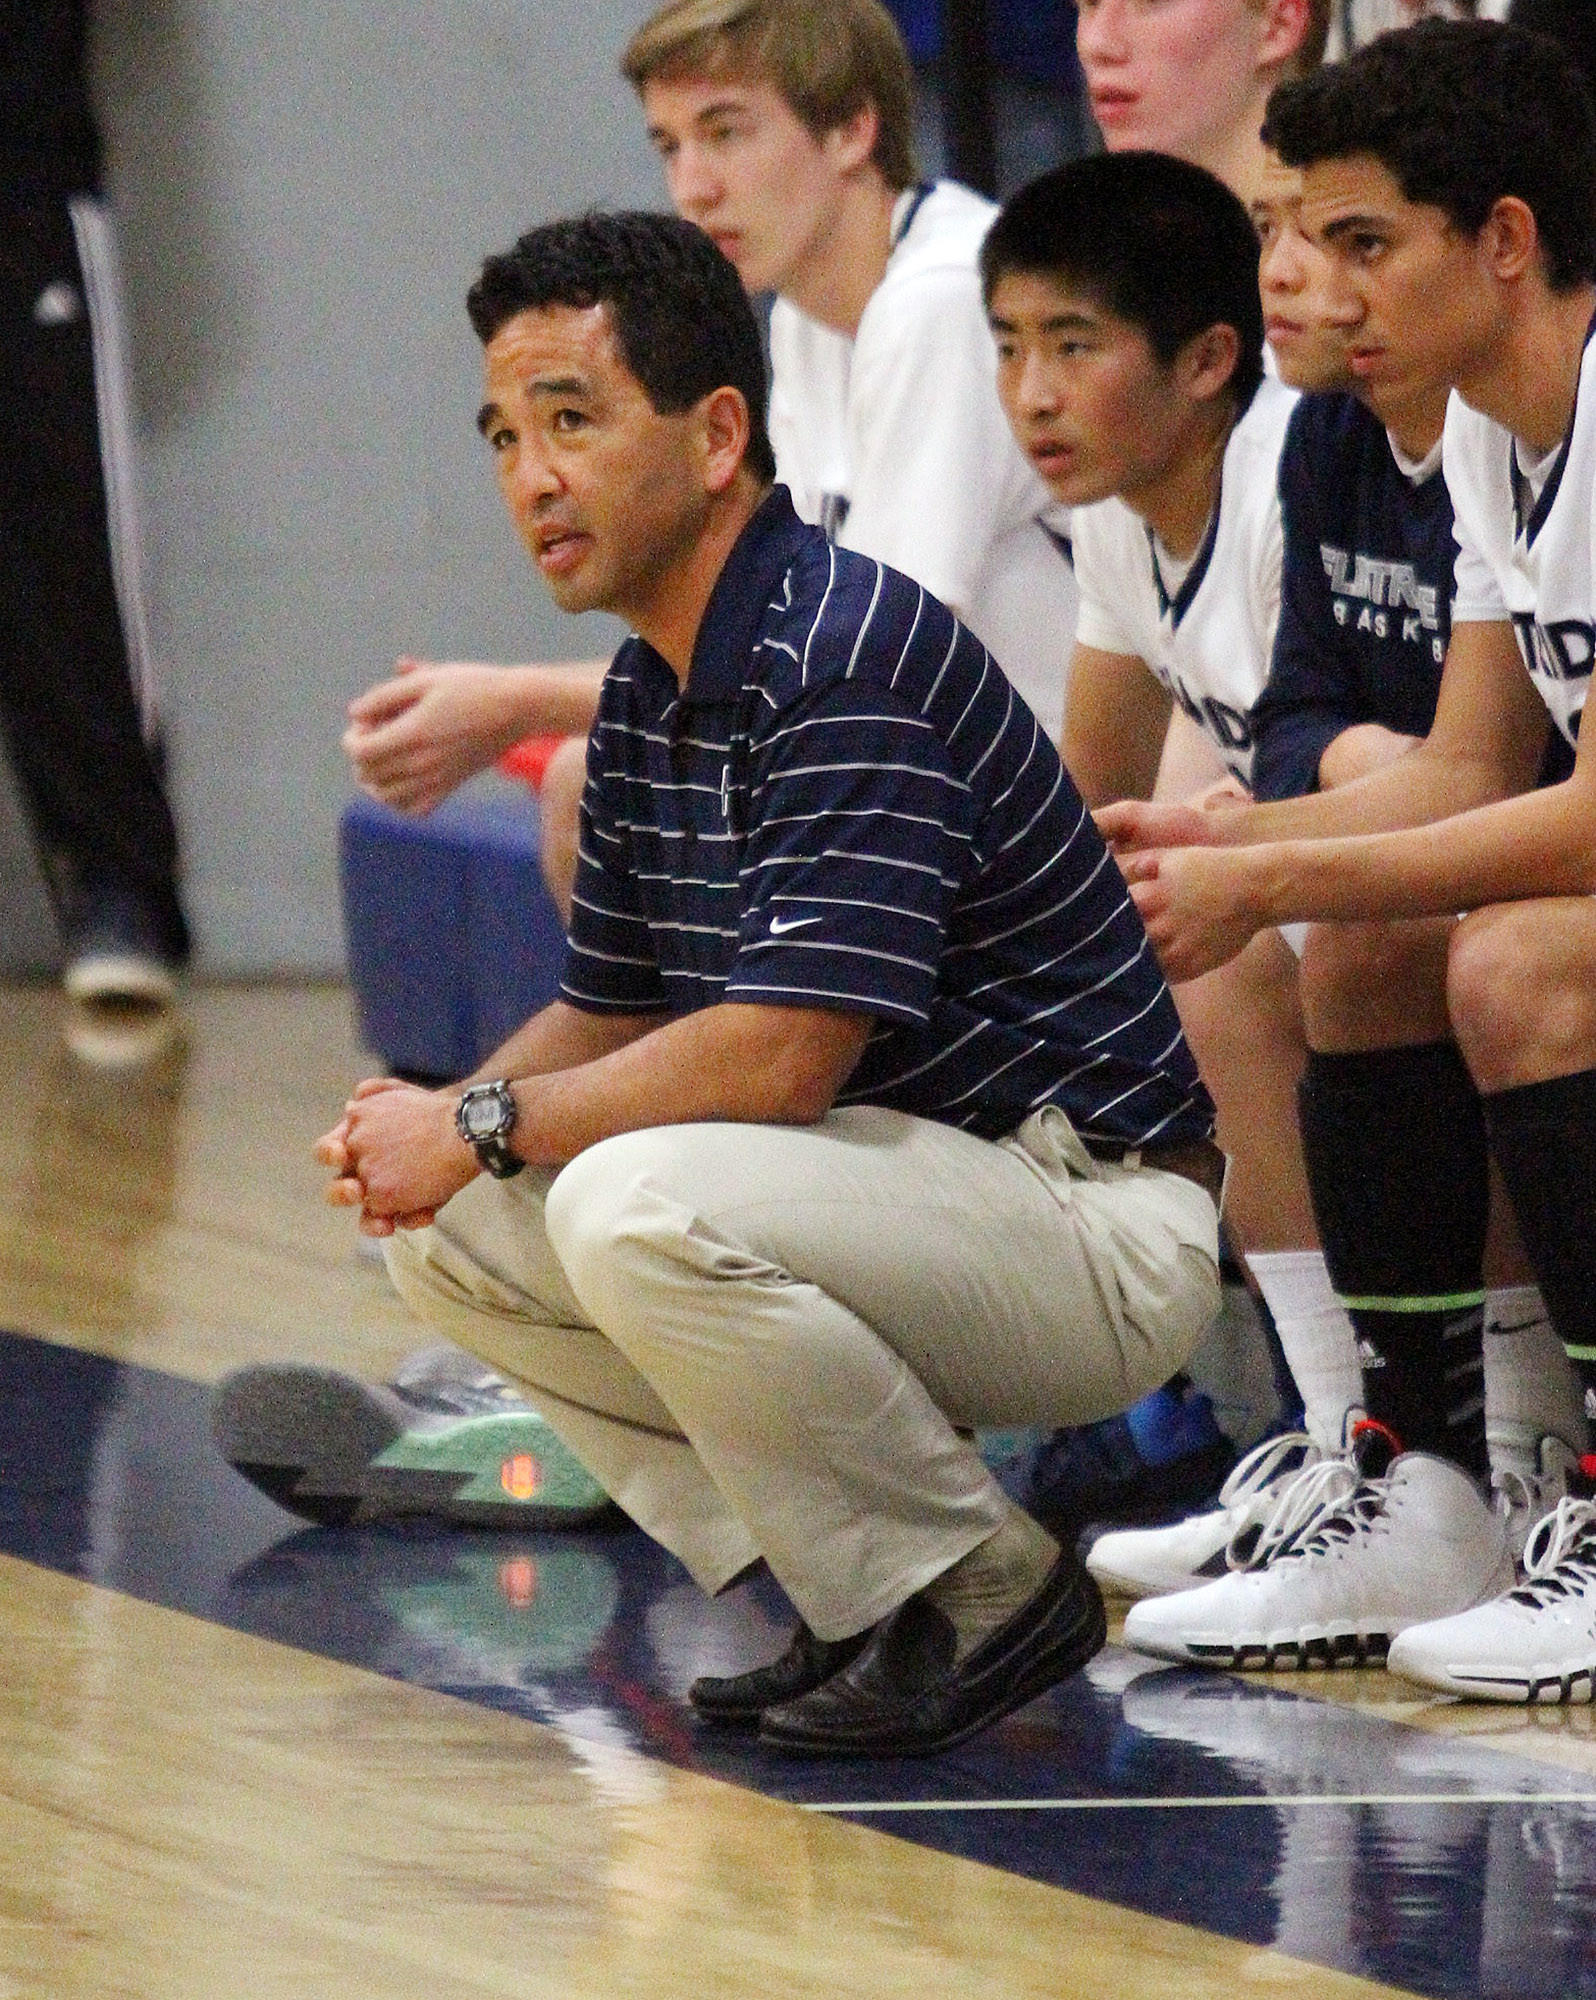 Flintridge Prep's coach Garrett Ohara against Providence in a boys basketball game at Flintridge Prep on Tuesday, January 8, 2014.